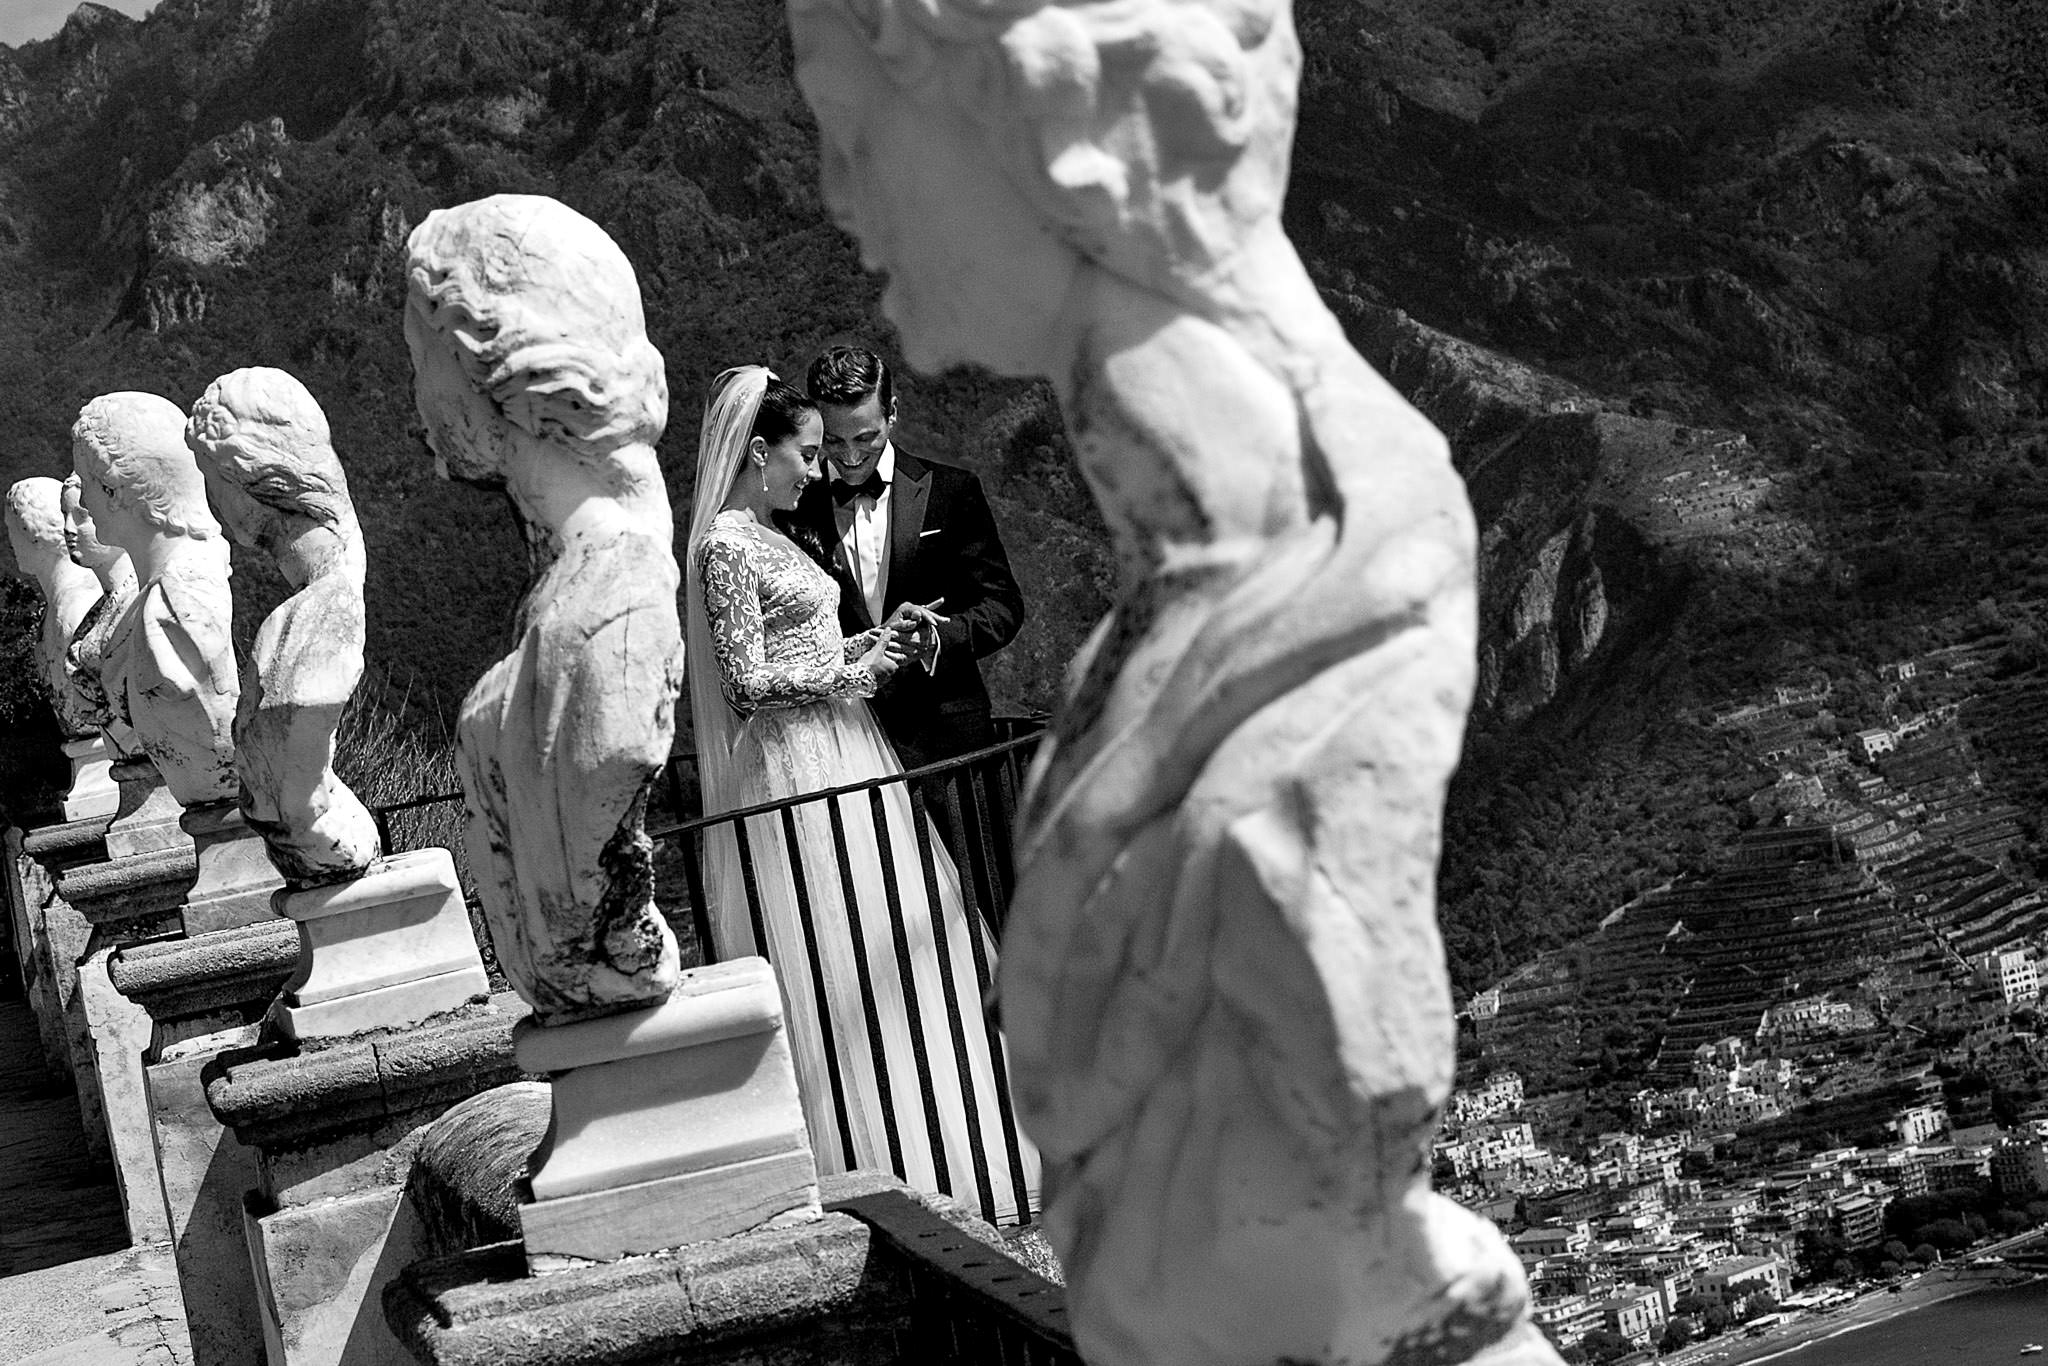 Bride and Groom looking out over Villa Cimbrone View while appreciating their wedding rings